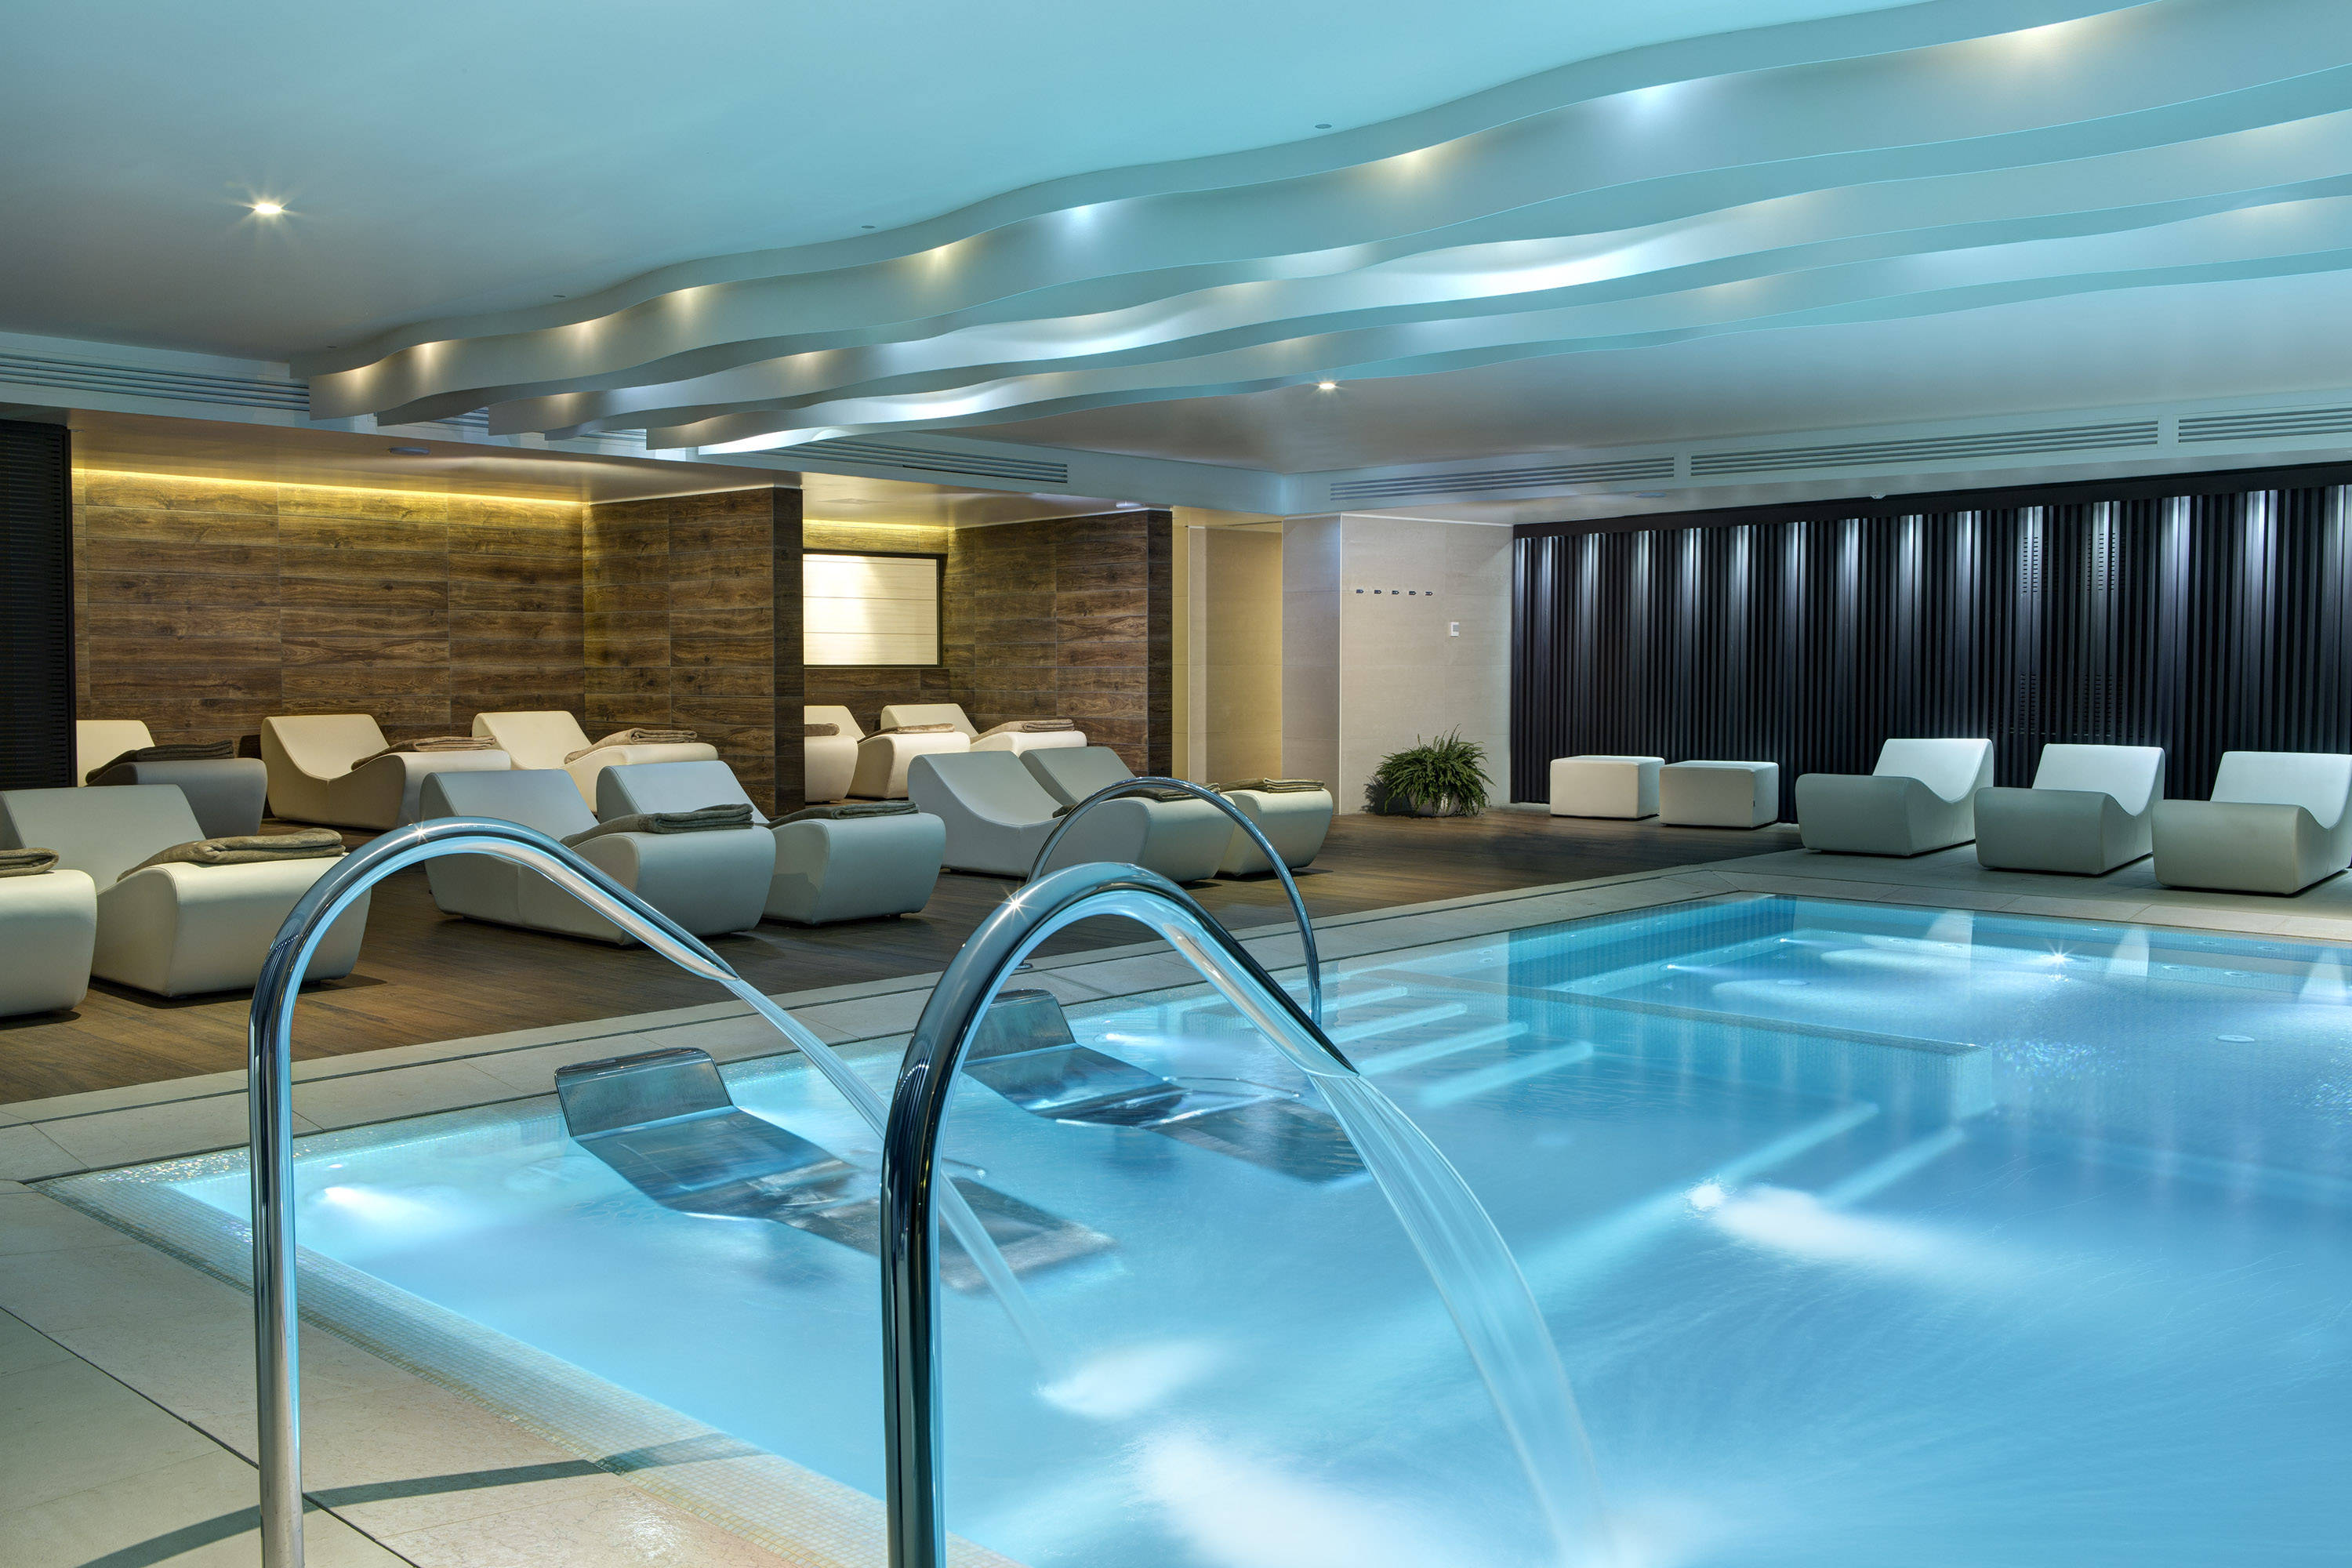 Almablu wellness spa hotel almar jesolo resort venice for Pool designs venice